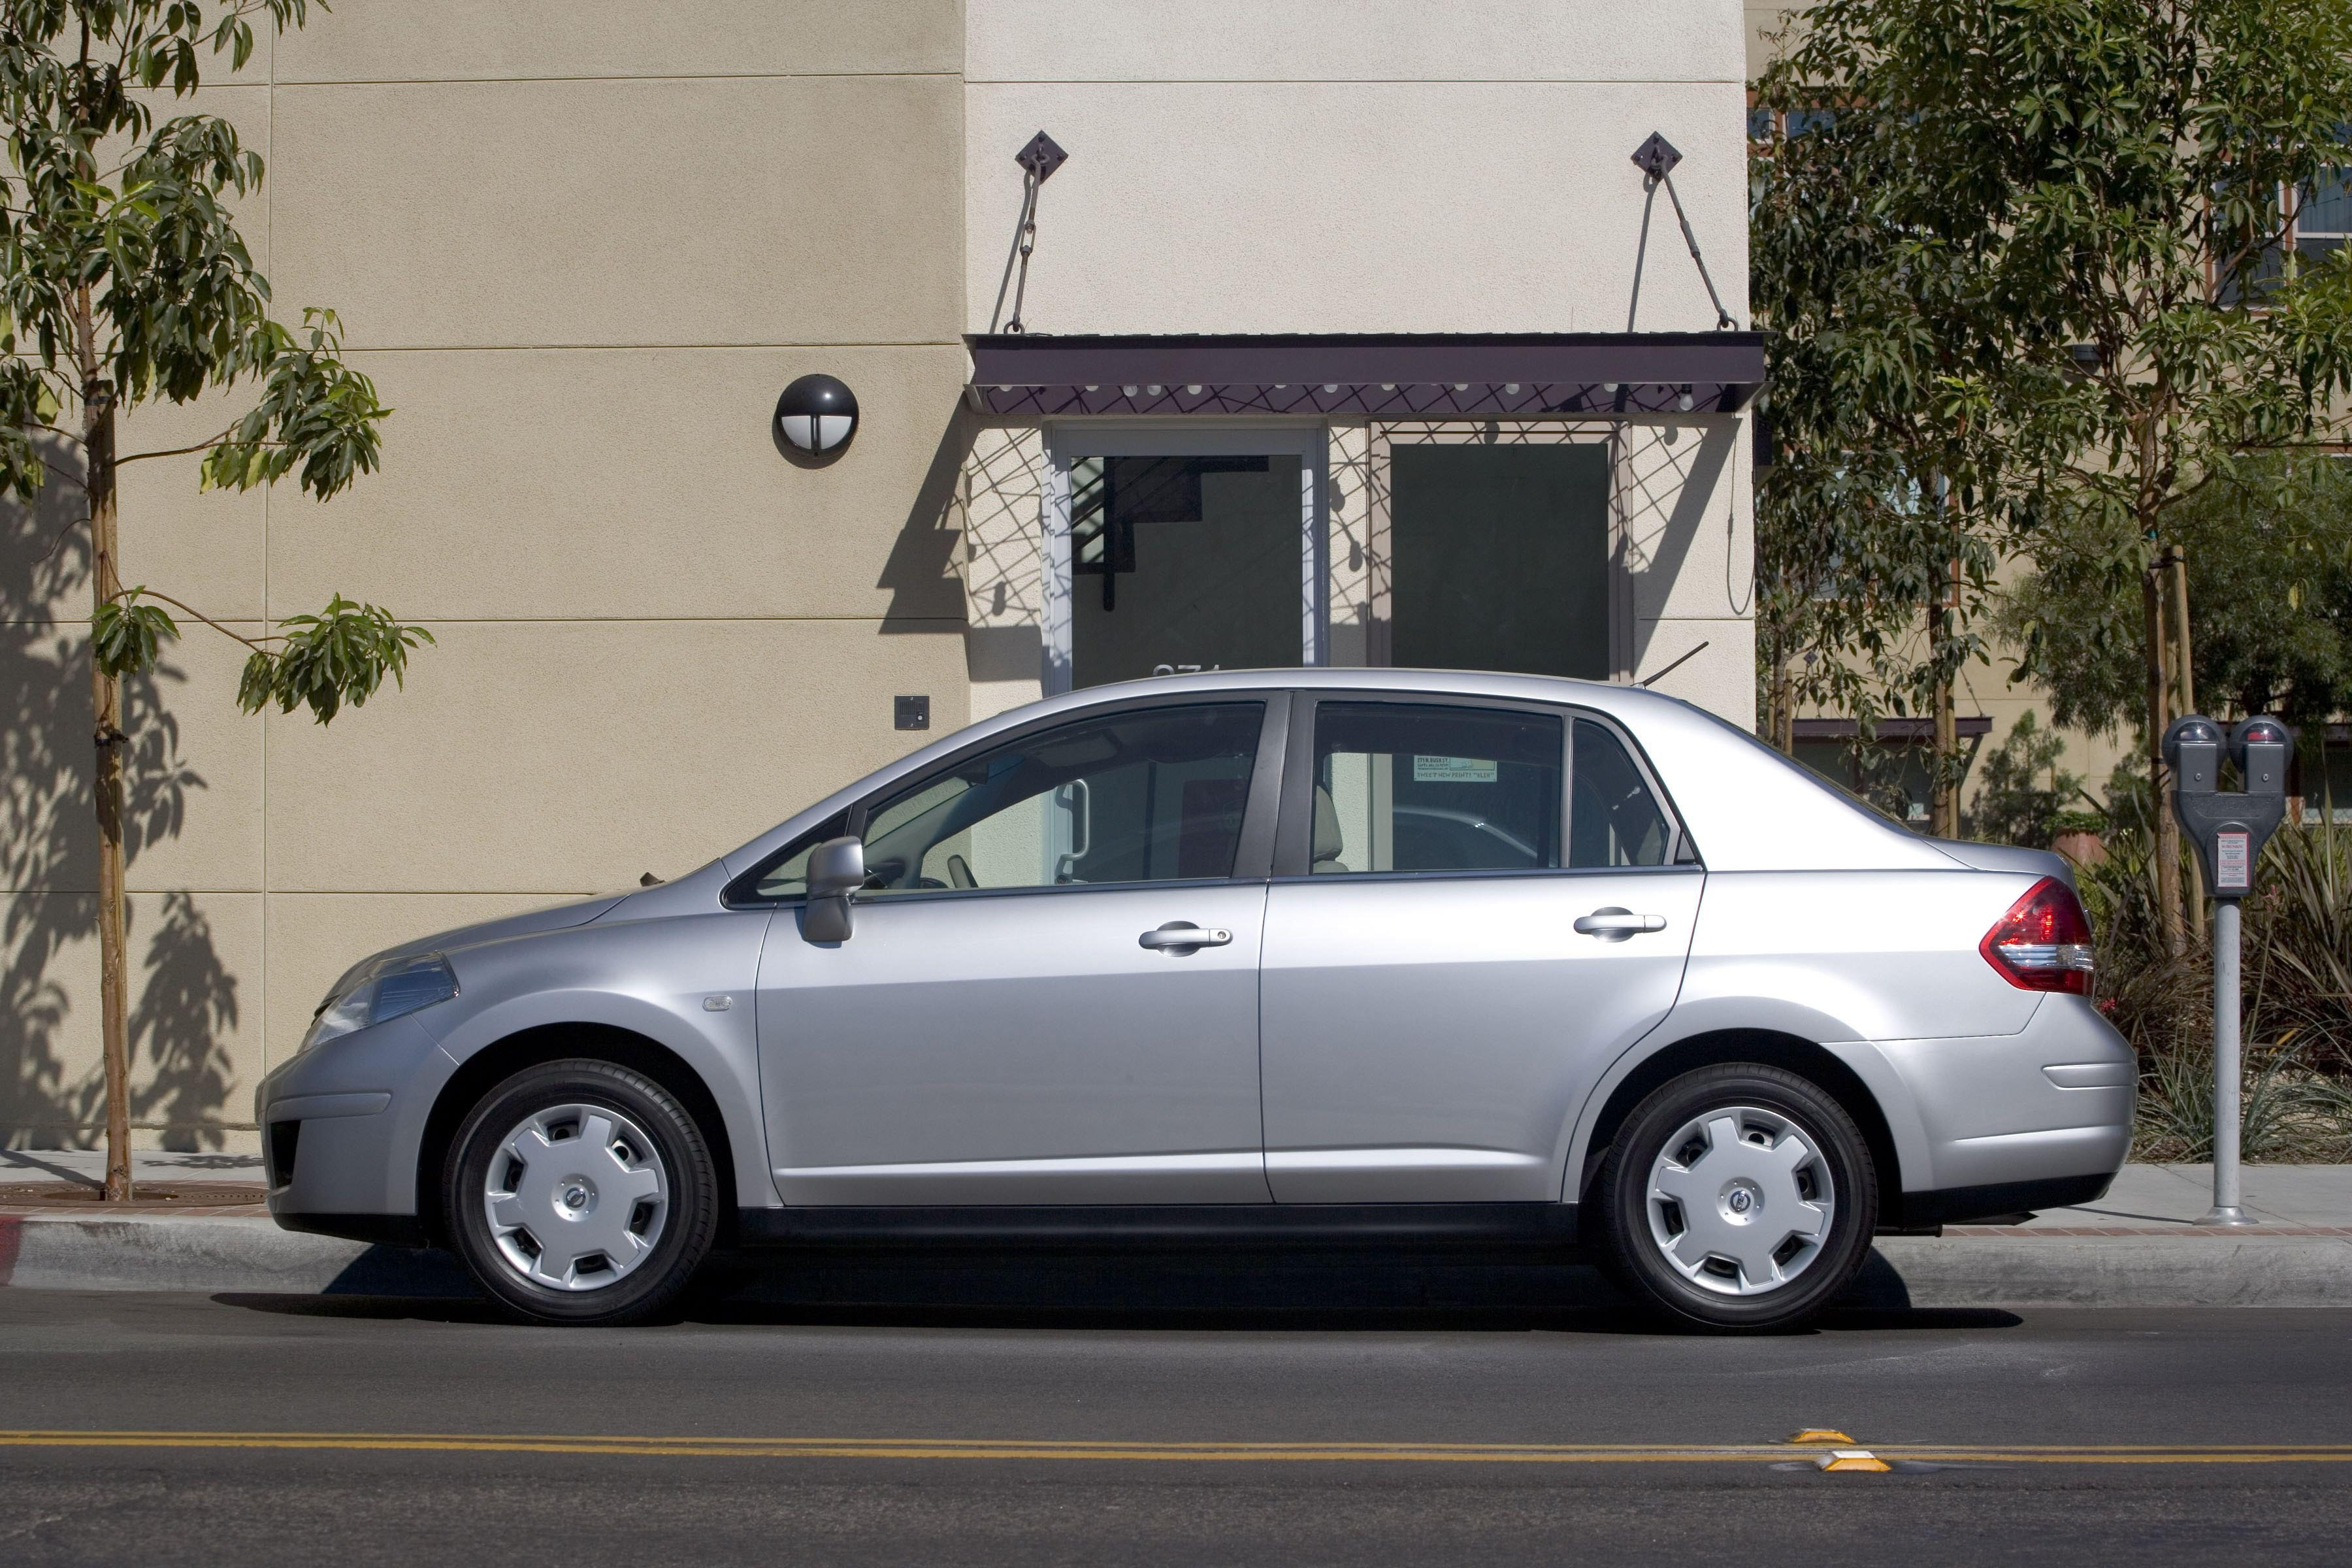 Nissan Versa Downloads and Manuals - Sponsored by NICO